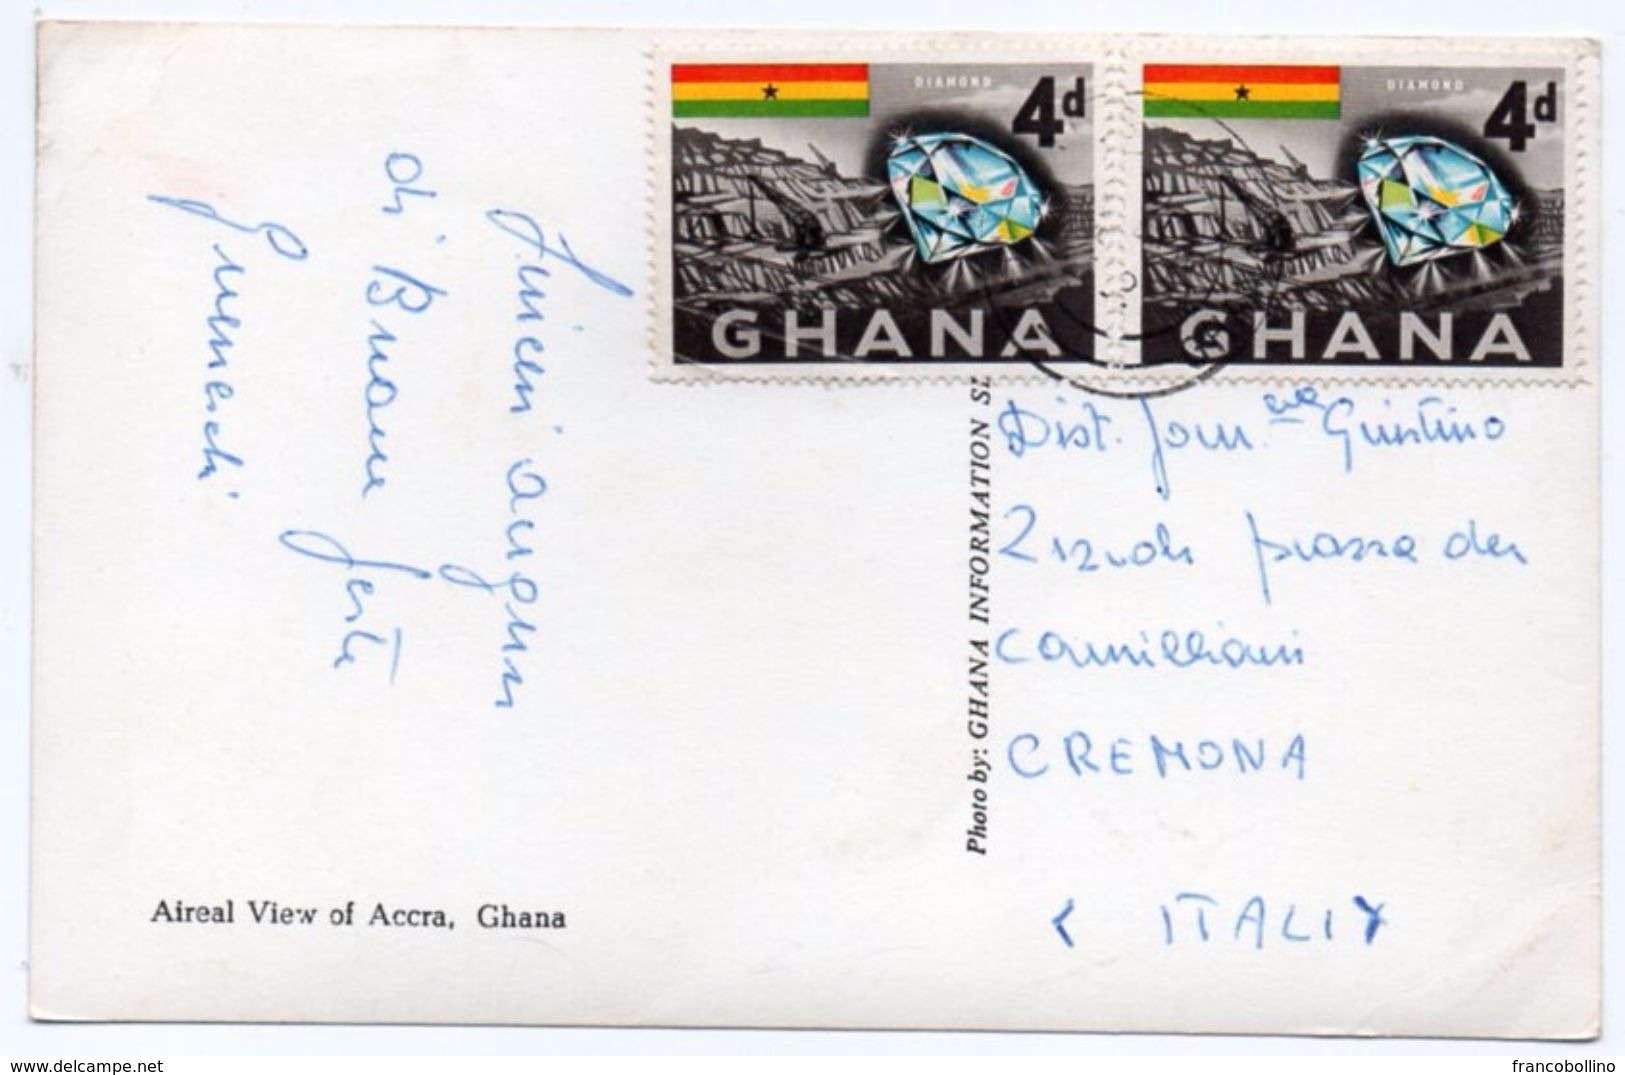 GHANA - AERIAL VIEW OF ACCRA / THEMATIC STAMPS-DIAMONDS - Ghana - Gold Coast